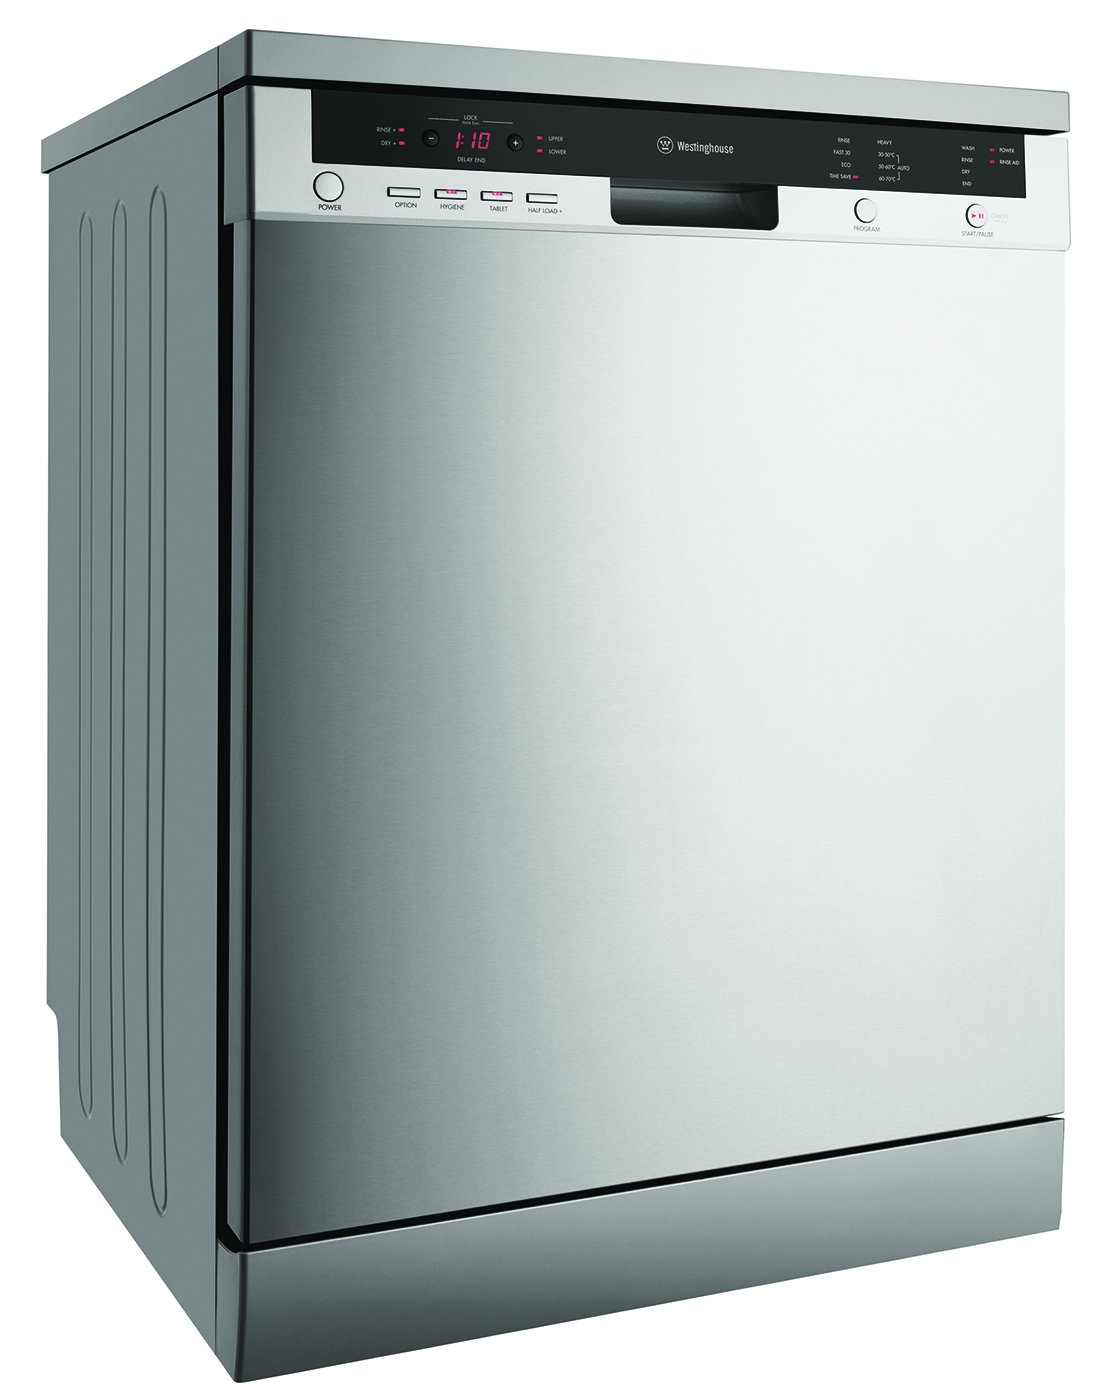 Westinghouse WSF6608X Stainless Steel Freestanding Dishwasher